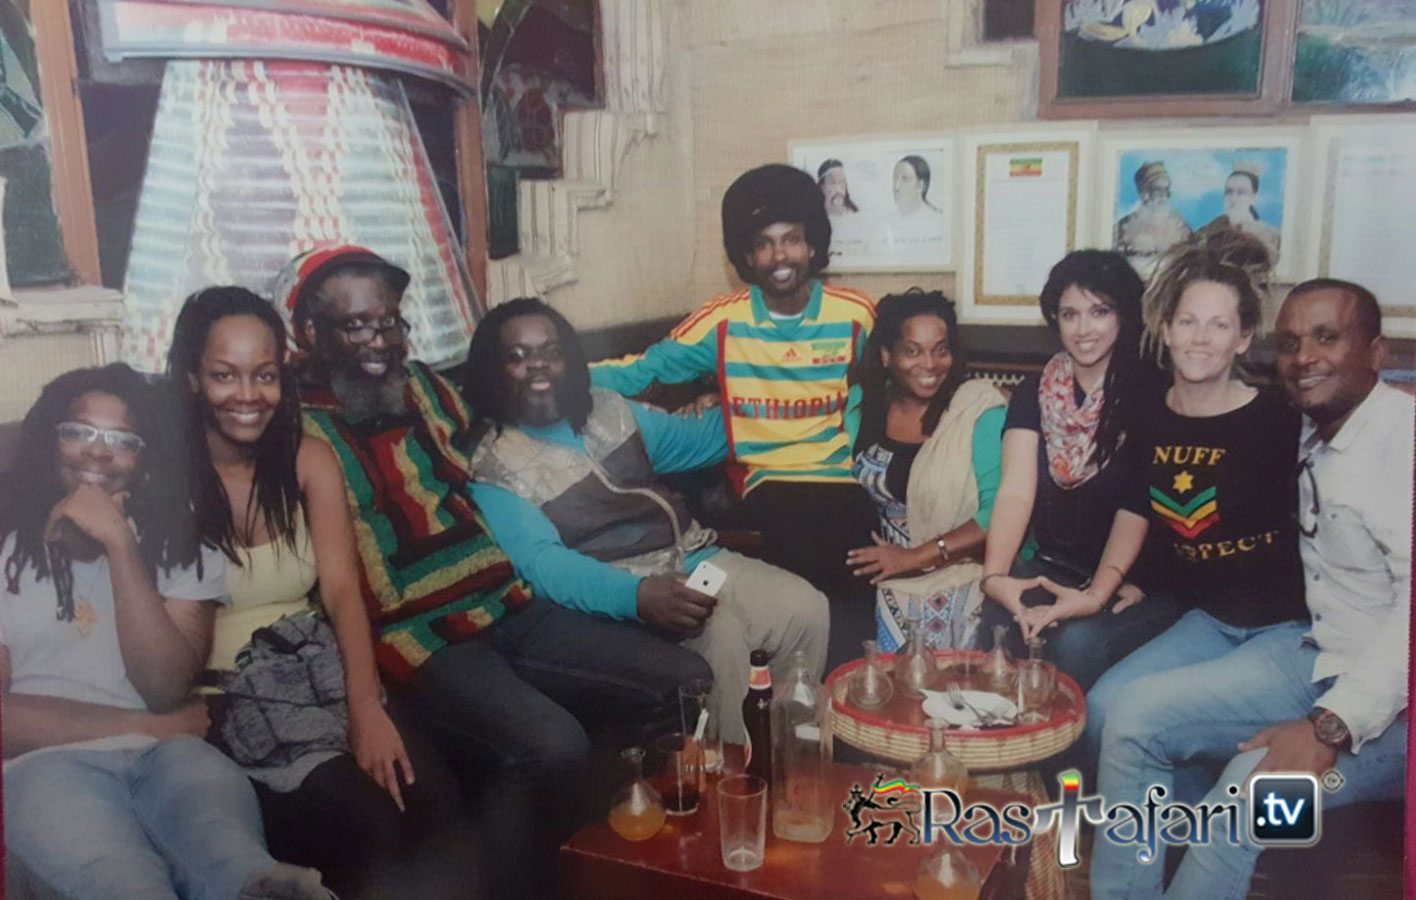 rastafari-tv-footsteps-of-our-emperor-tour